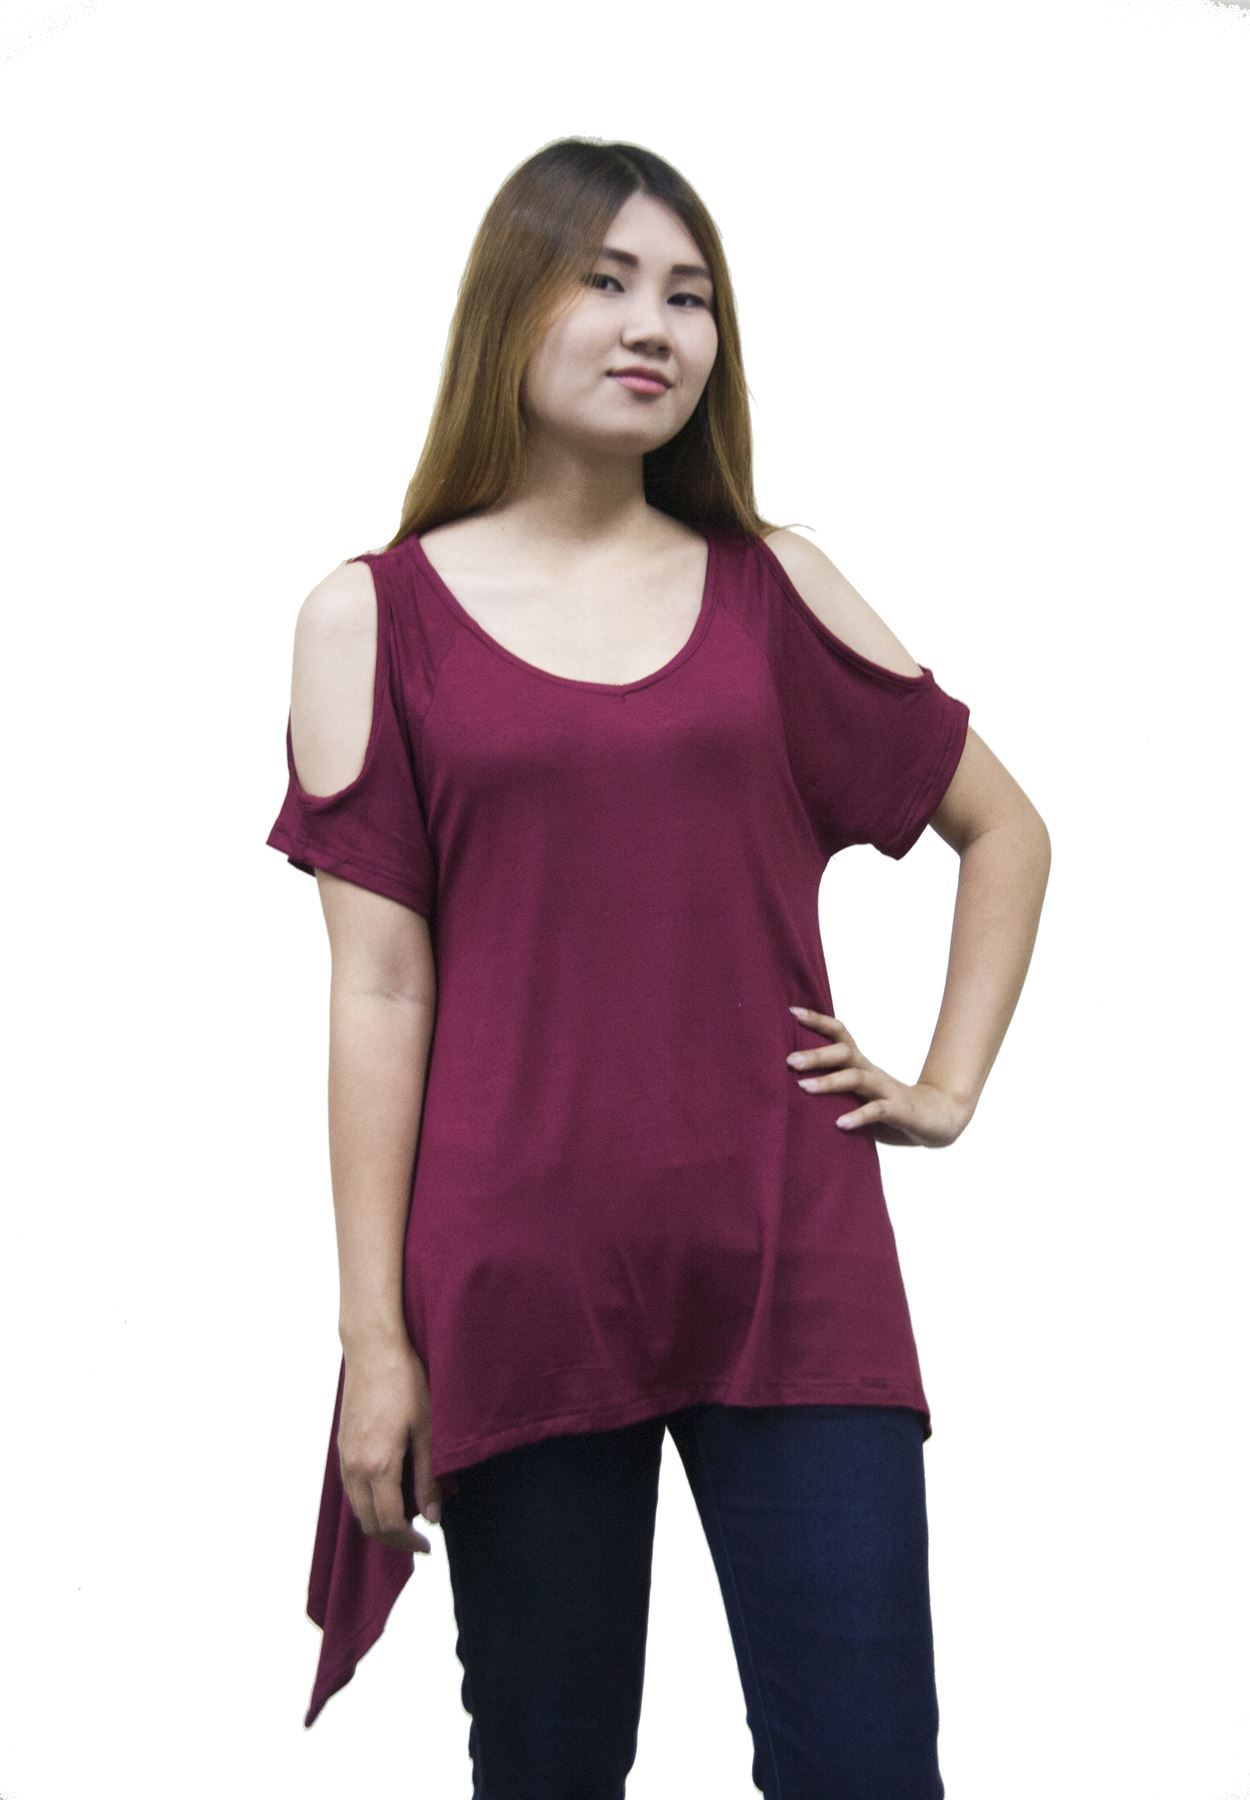 Dressy Tops Select a Category ( Styles) ( Styles) All Tops Casual Tops Sexy Tops Bodysuits Sleeveless Short Sleeve Long Sleeve Blouses and Shirts Tees Tank Tops Tubes & Camis Crop Tops Dressy Tops Lingerie Sweaters Outerwear Kimonos.